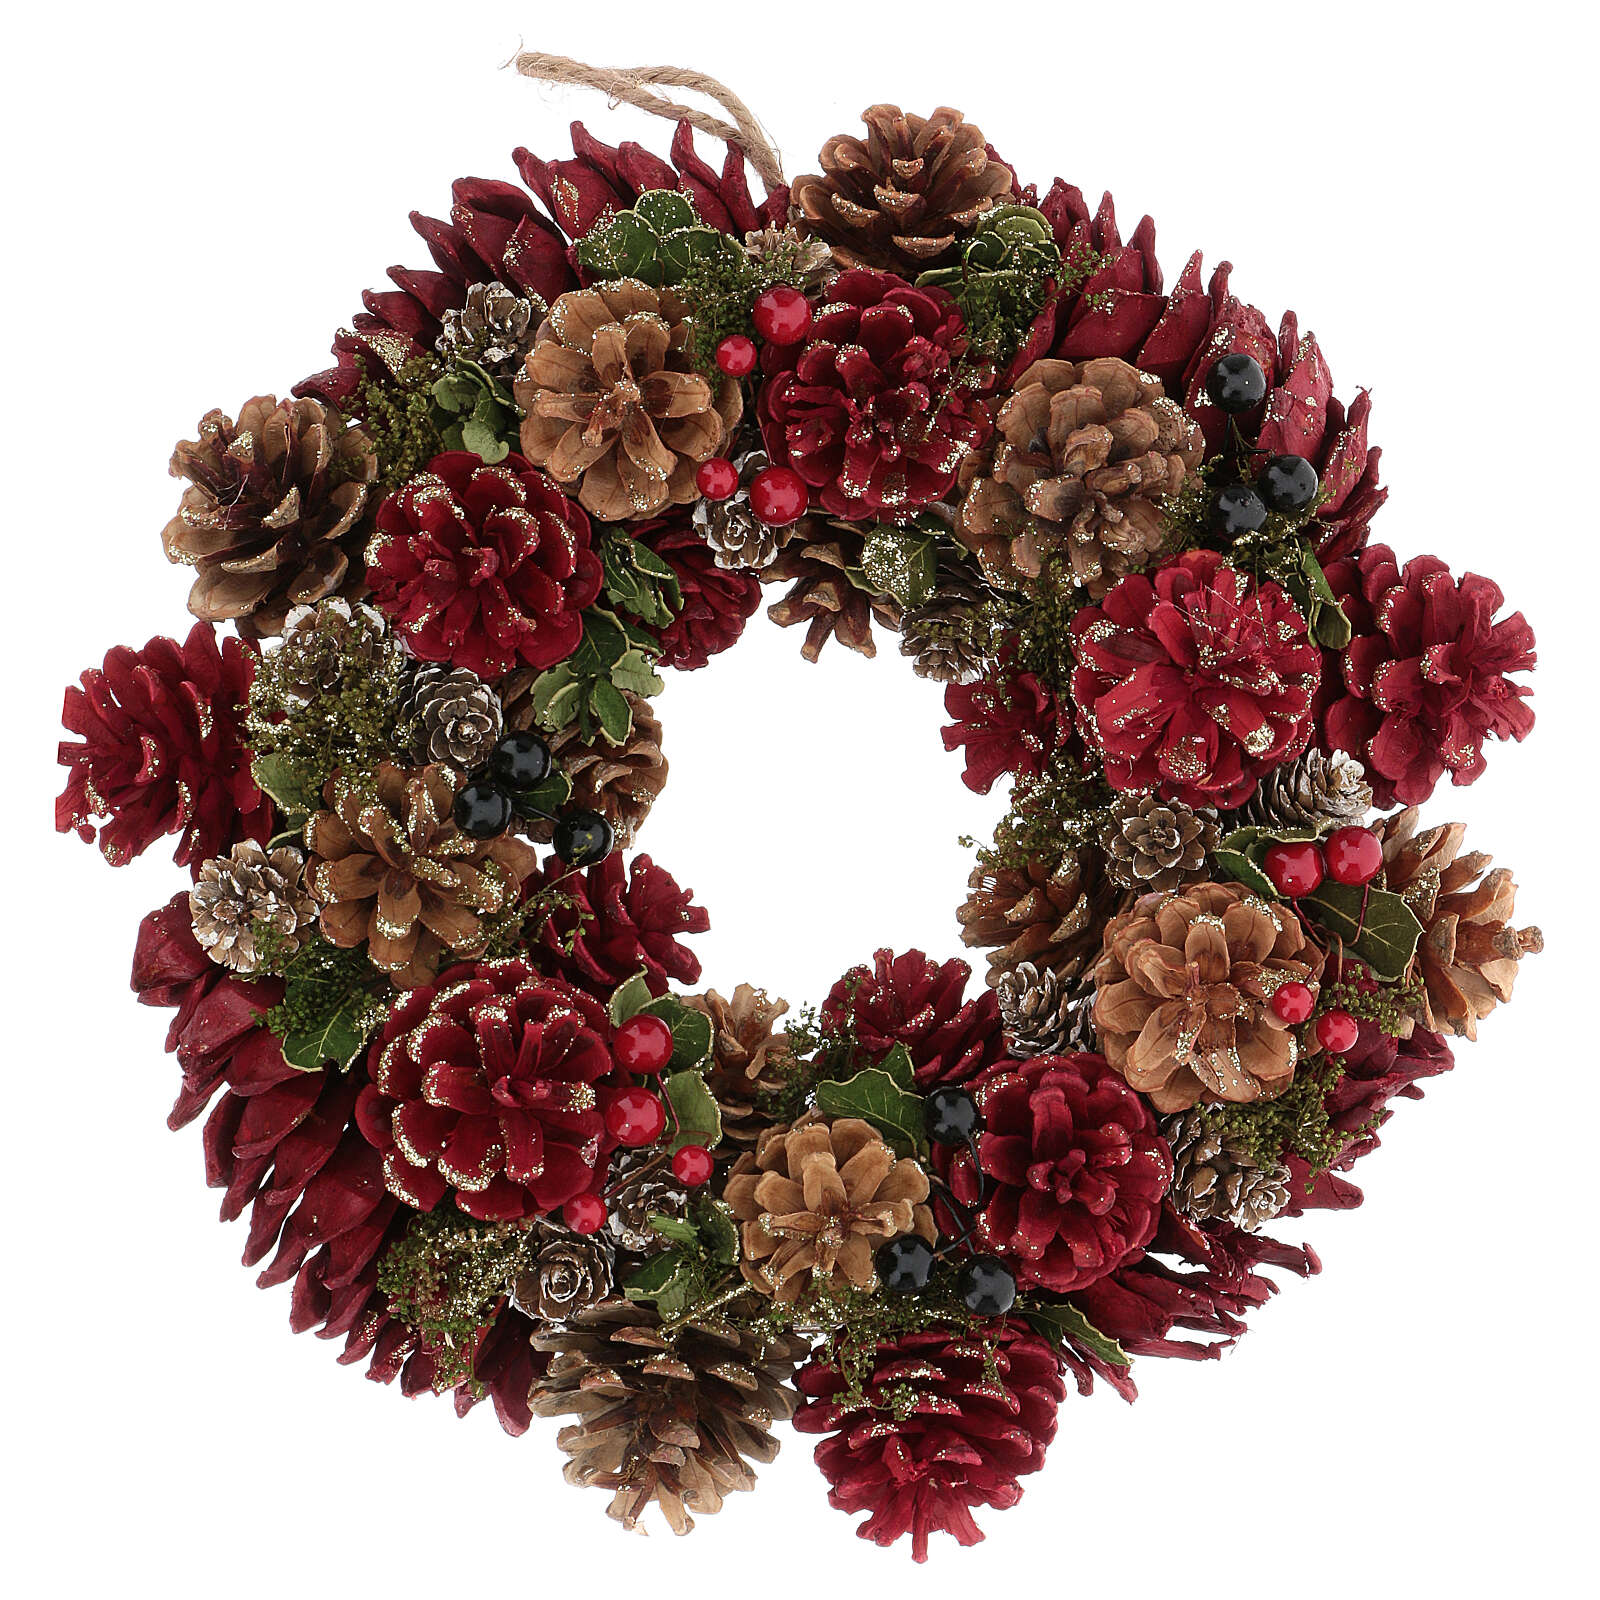 Advent wreath in red with pine cones, berries and gold glitter decorations, diameter 30 cm 3